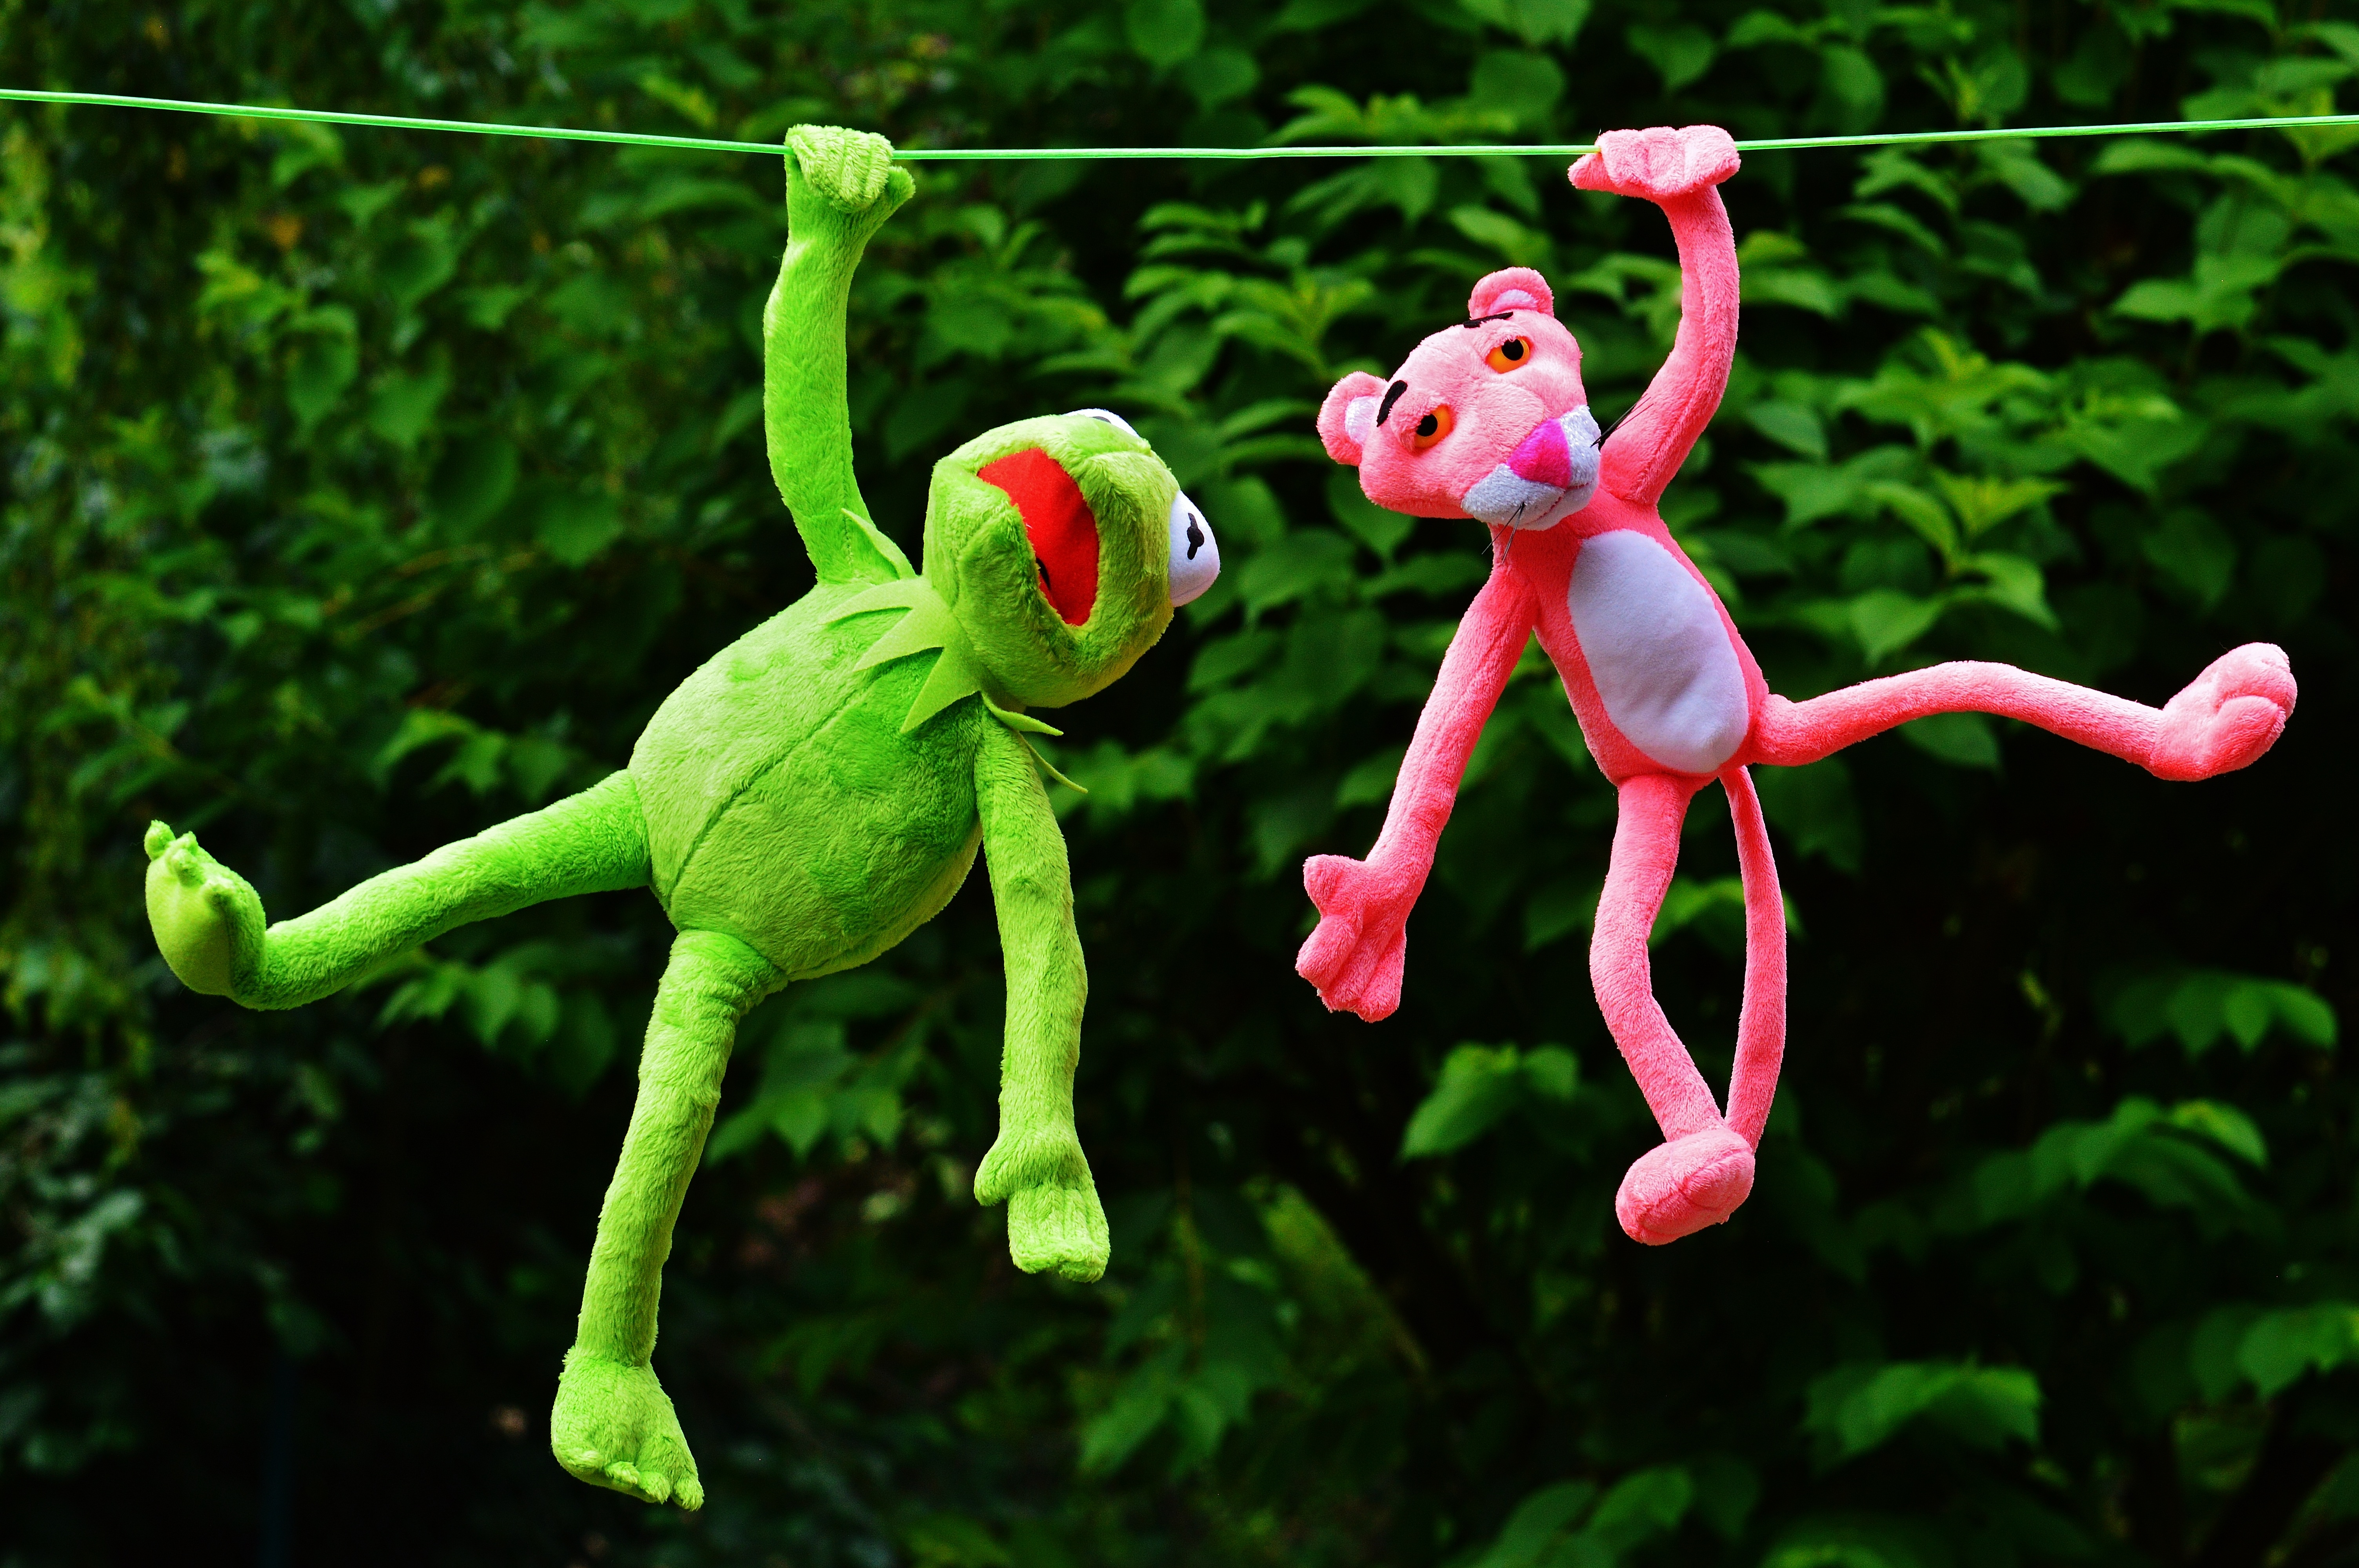 https://static.pexels.com/photos/128873/hang-out-plush-toys-kermit-the-pink-panther-128873.jpeg